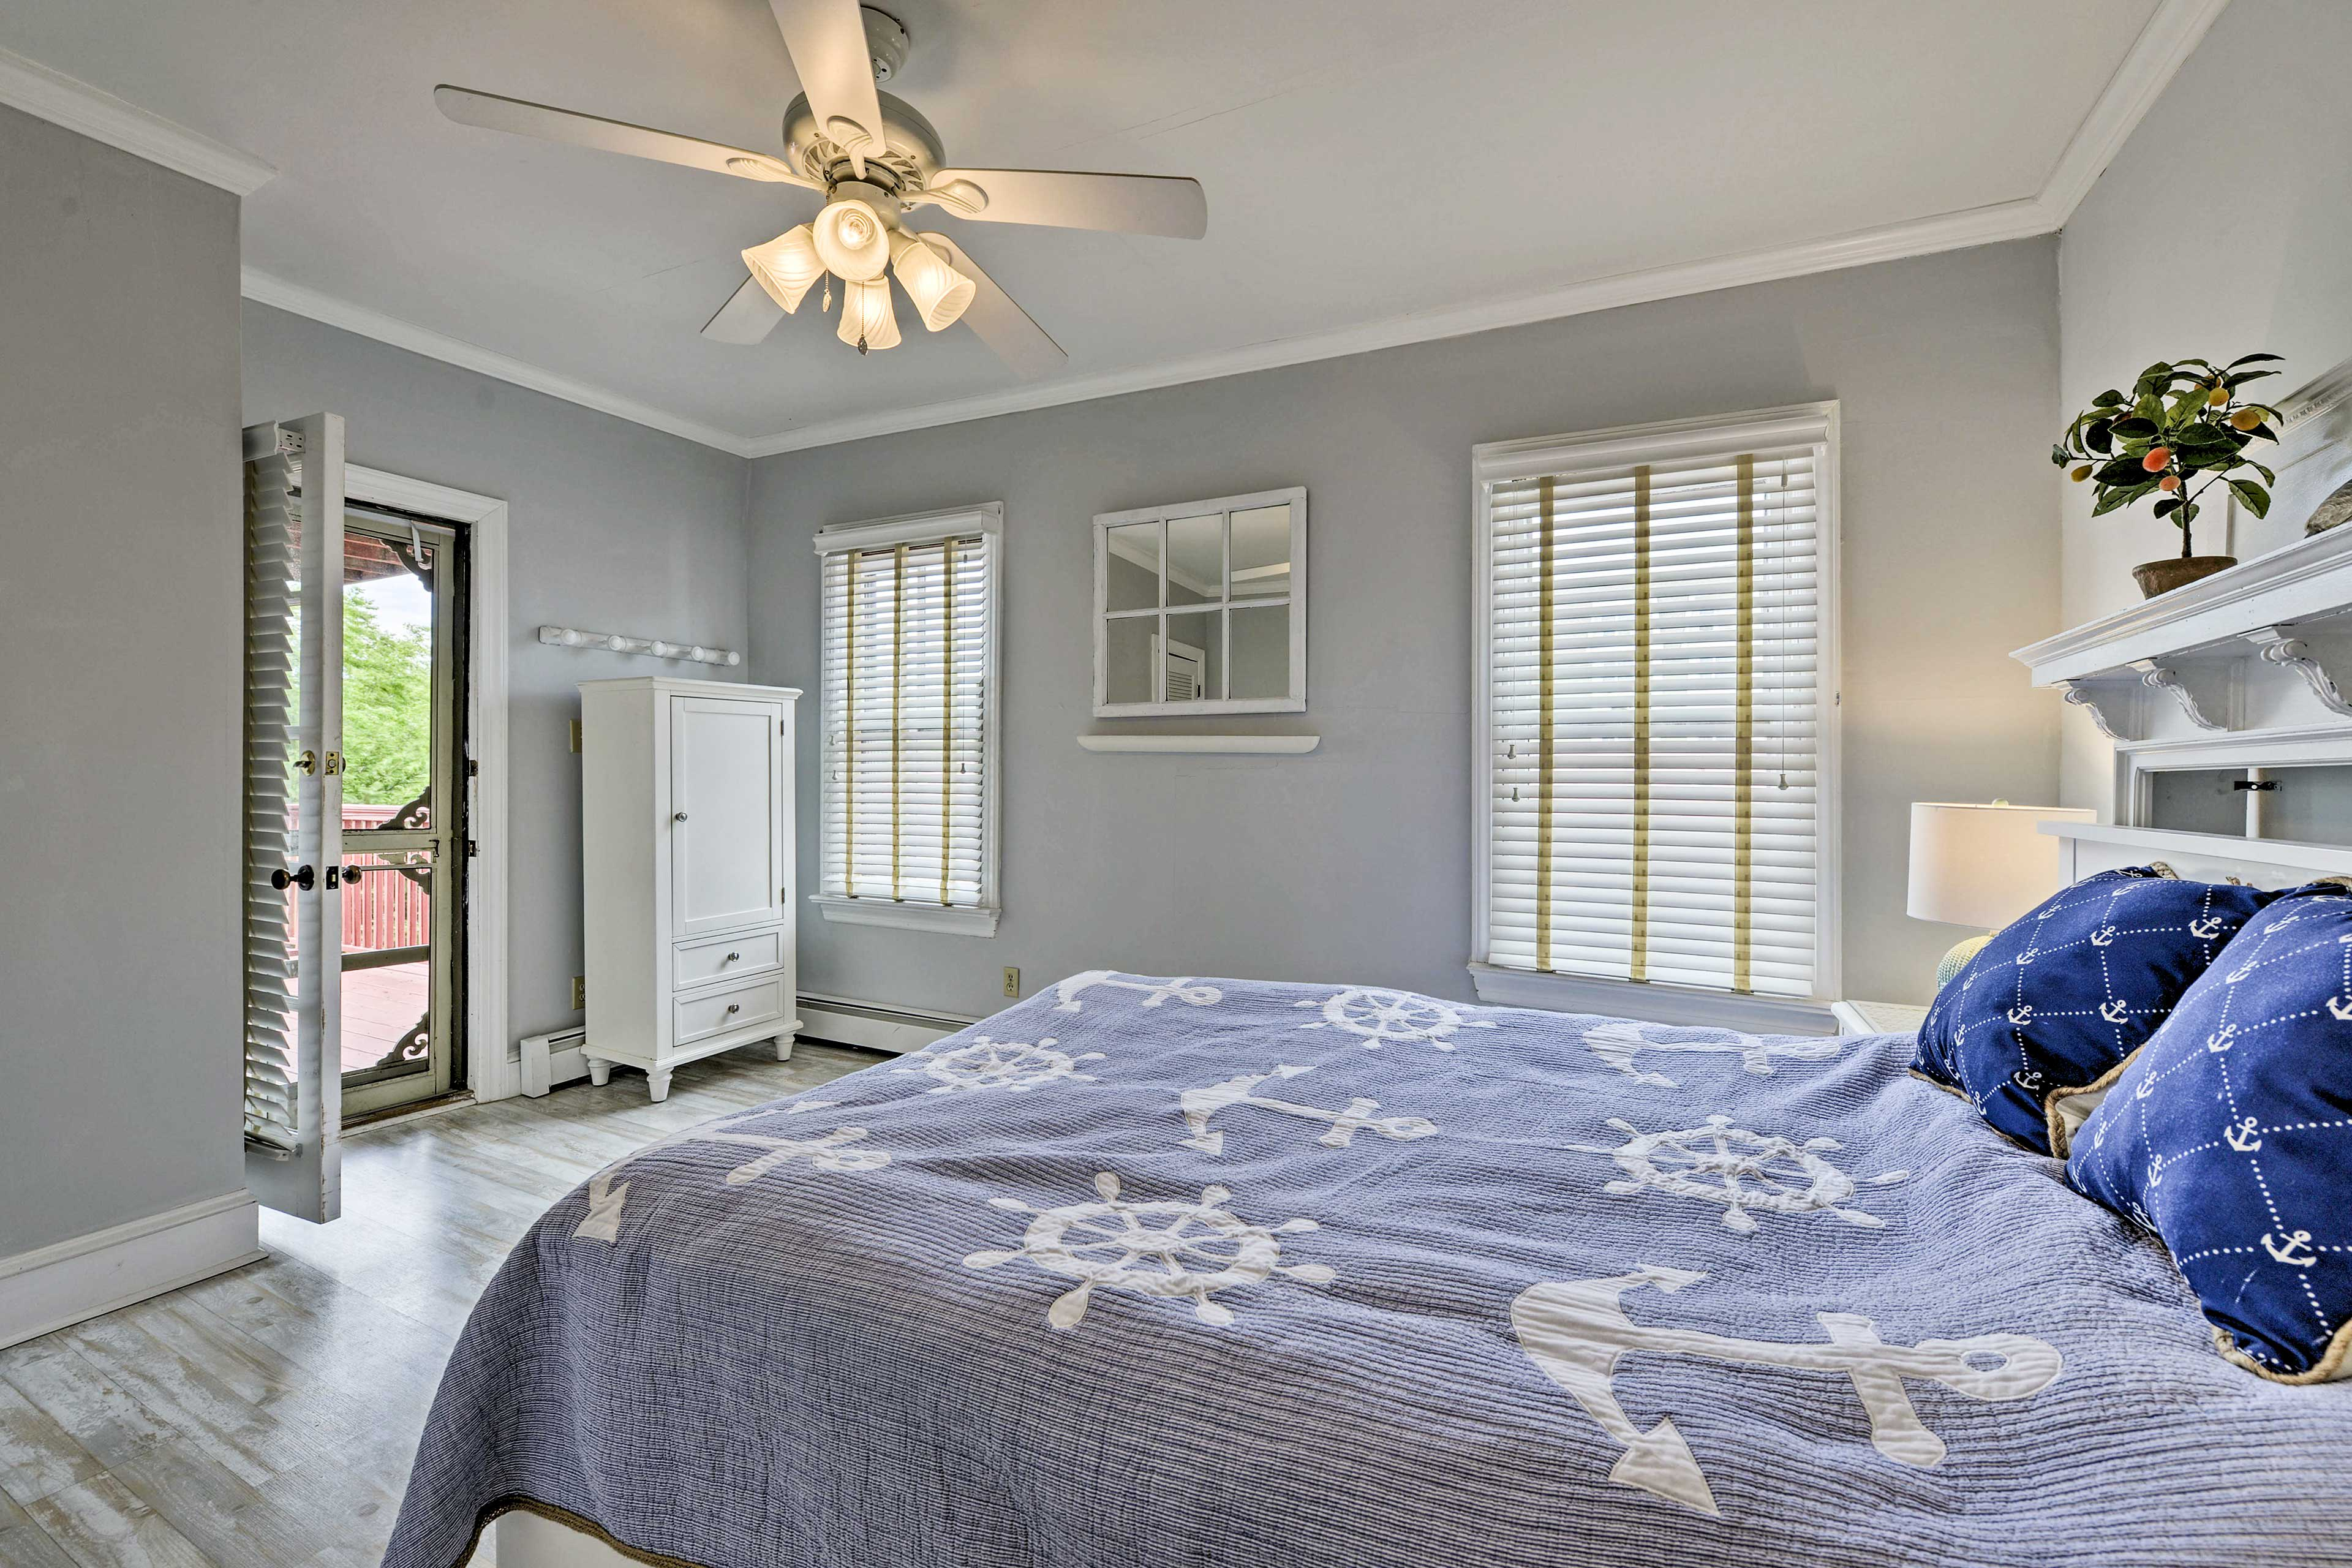 Open the door to the master bedroom for some fresh air!